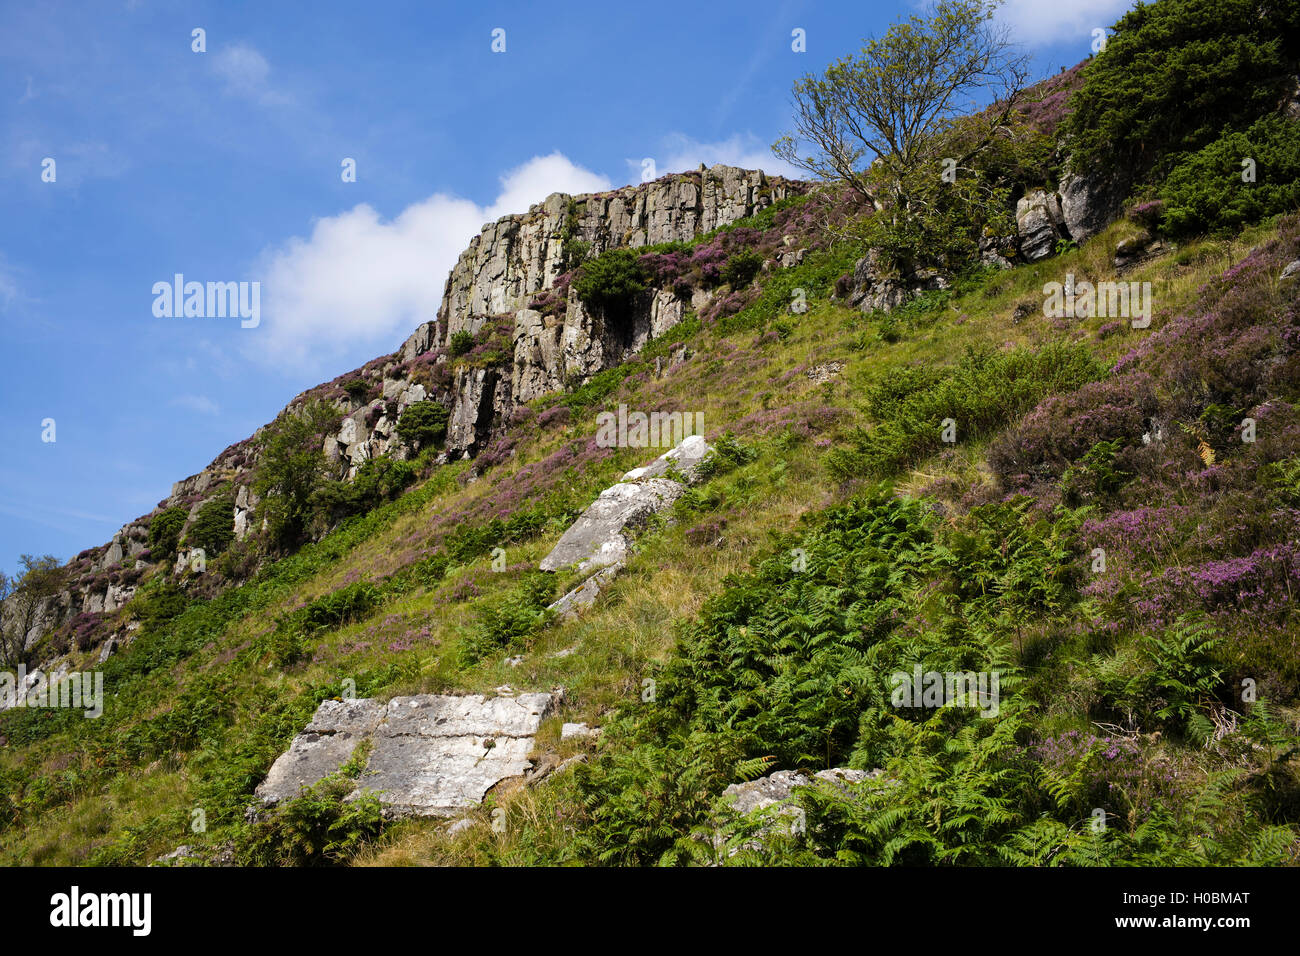 Falcon Clints, Upper Teesdale National Nature Reserve, Durham, England, UK - Stock Image